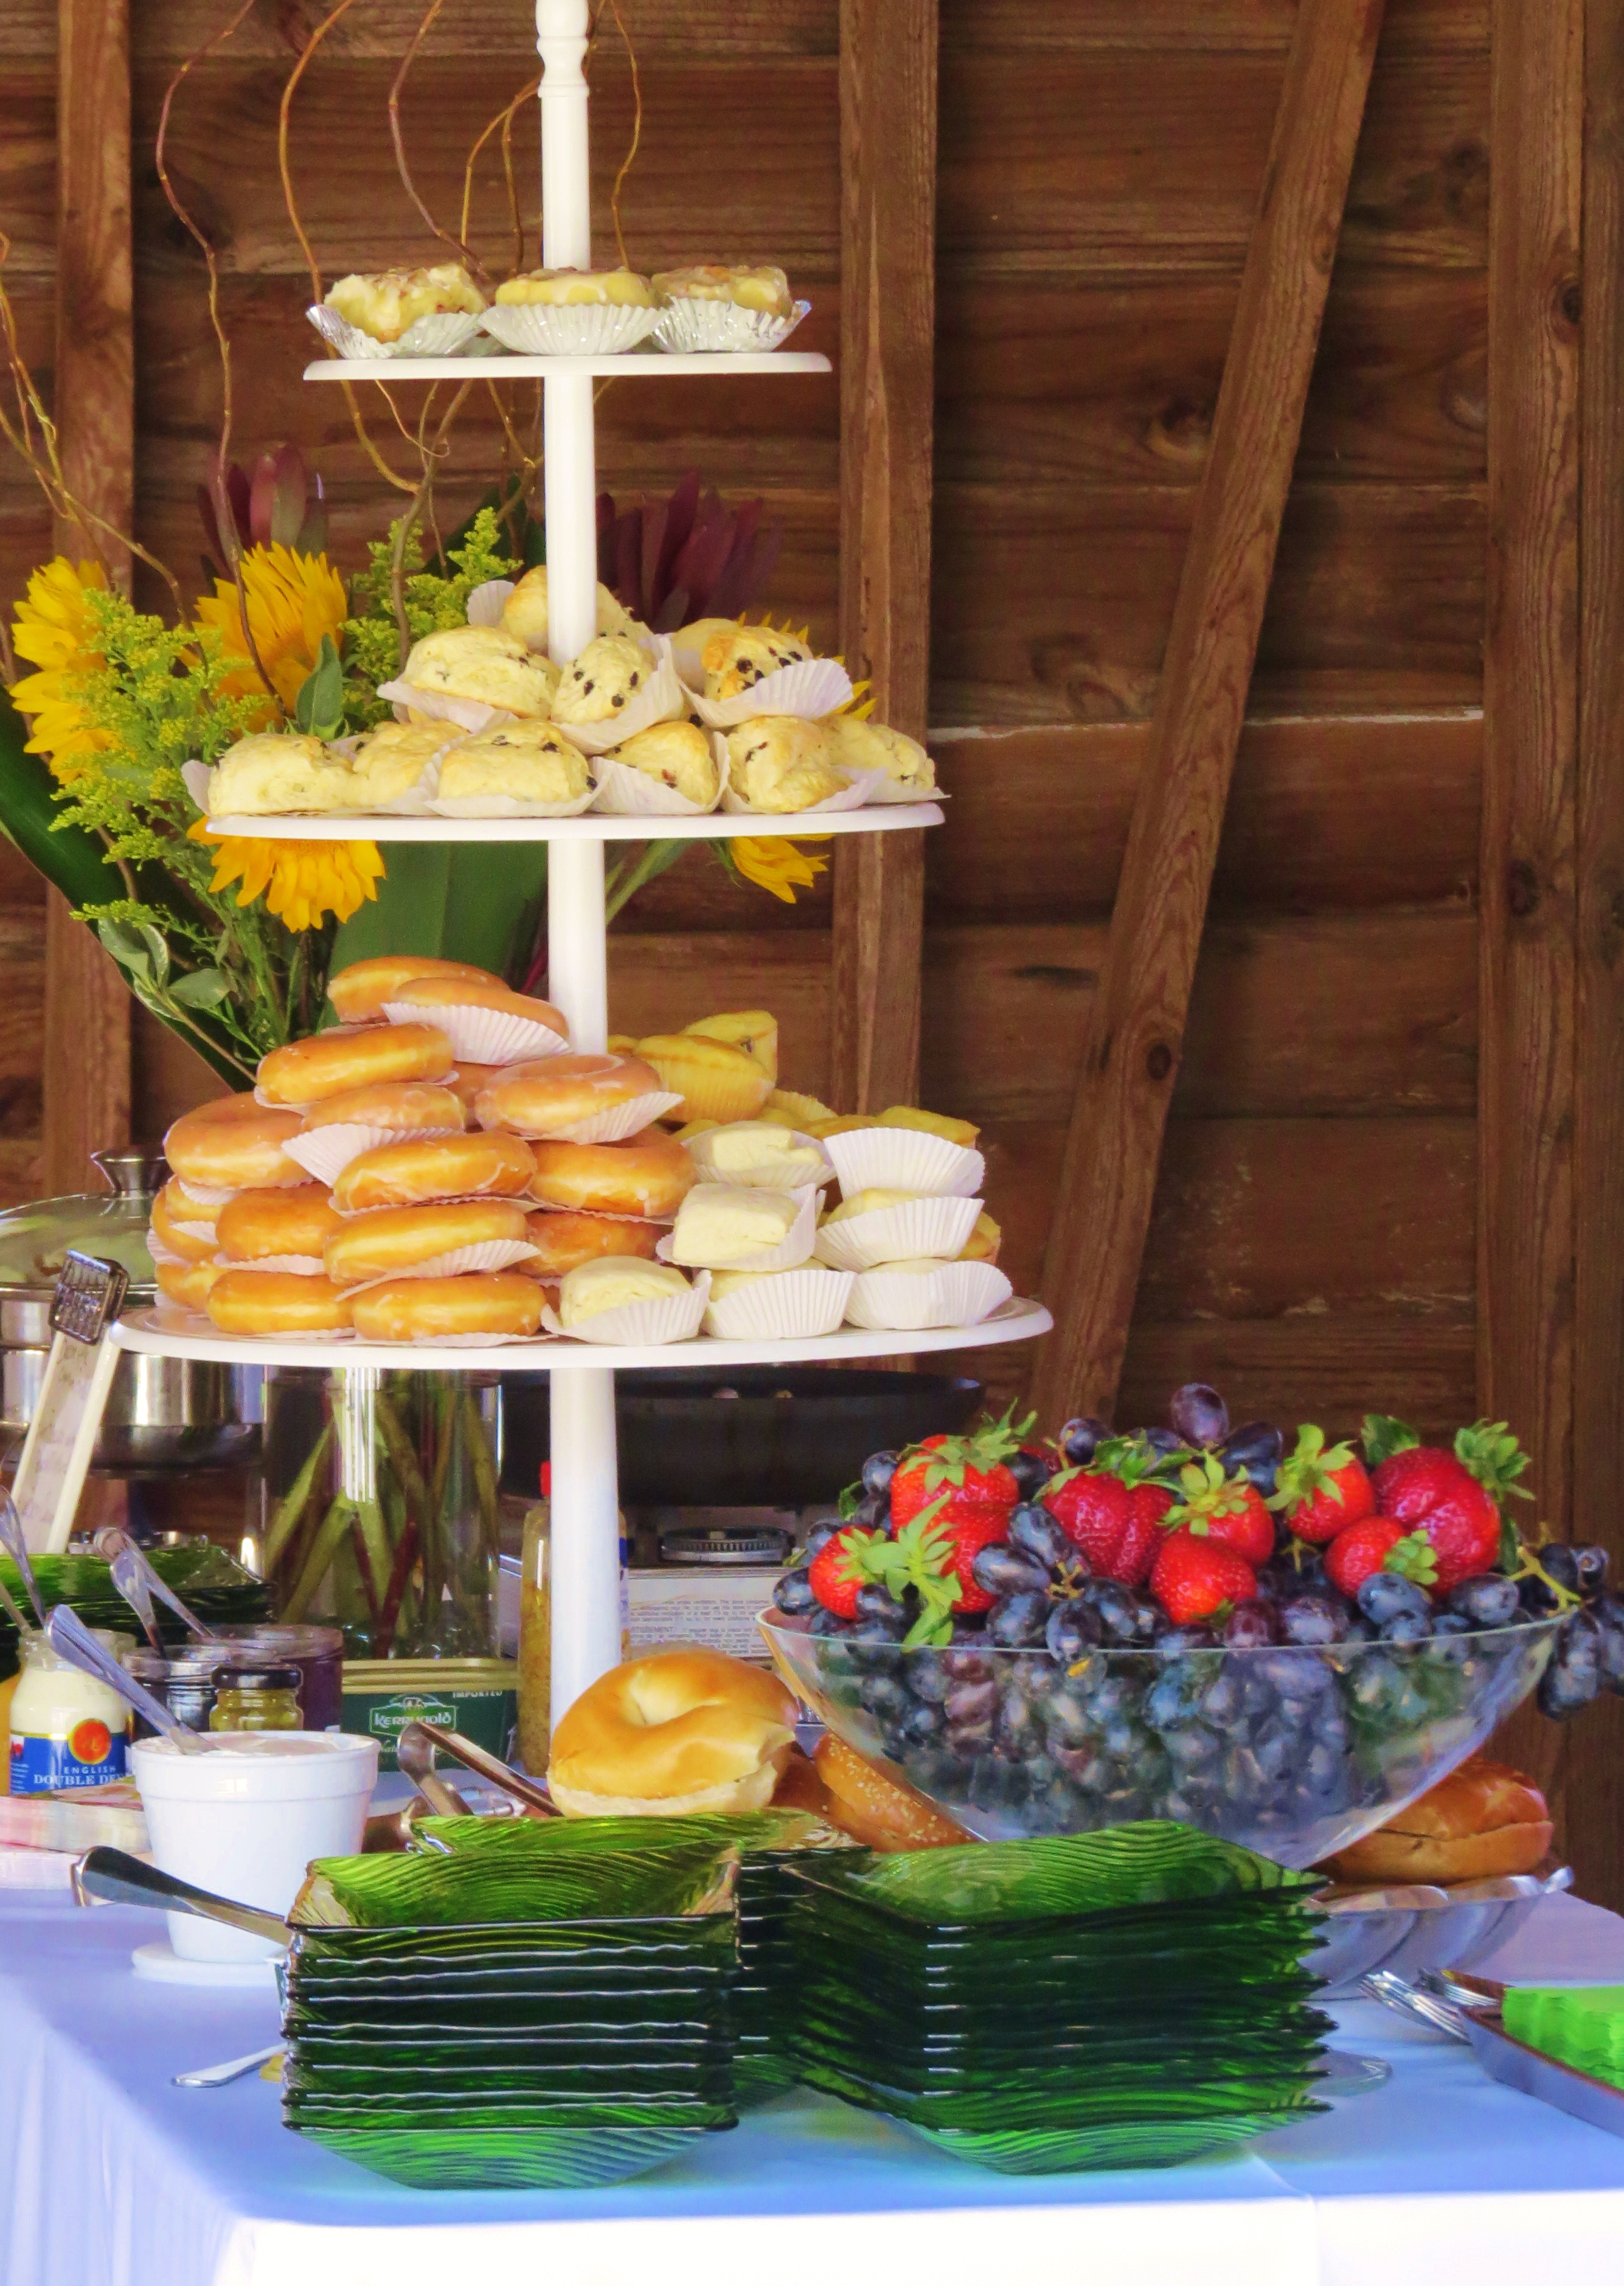 Fresh baked treats and fresh fruit make a perfect brunch